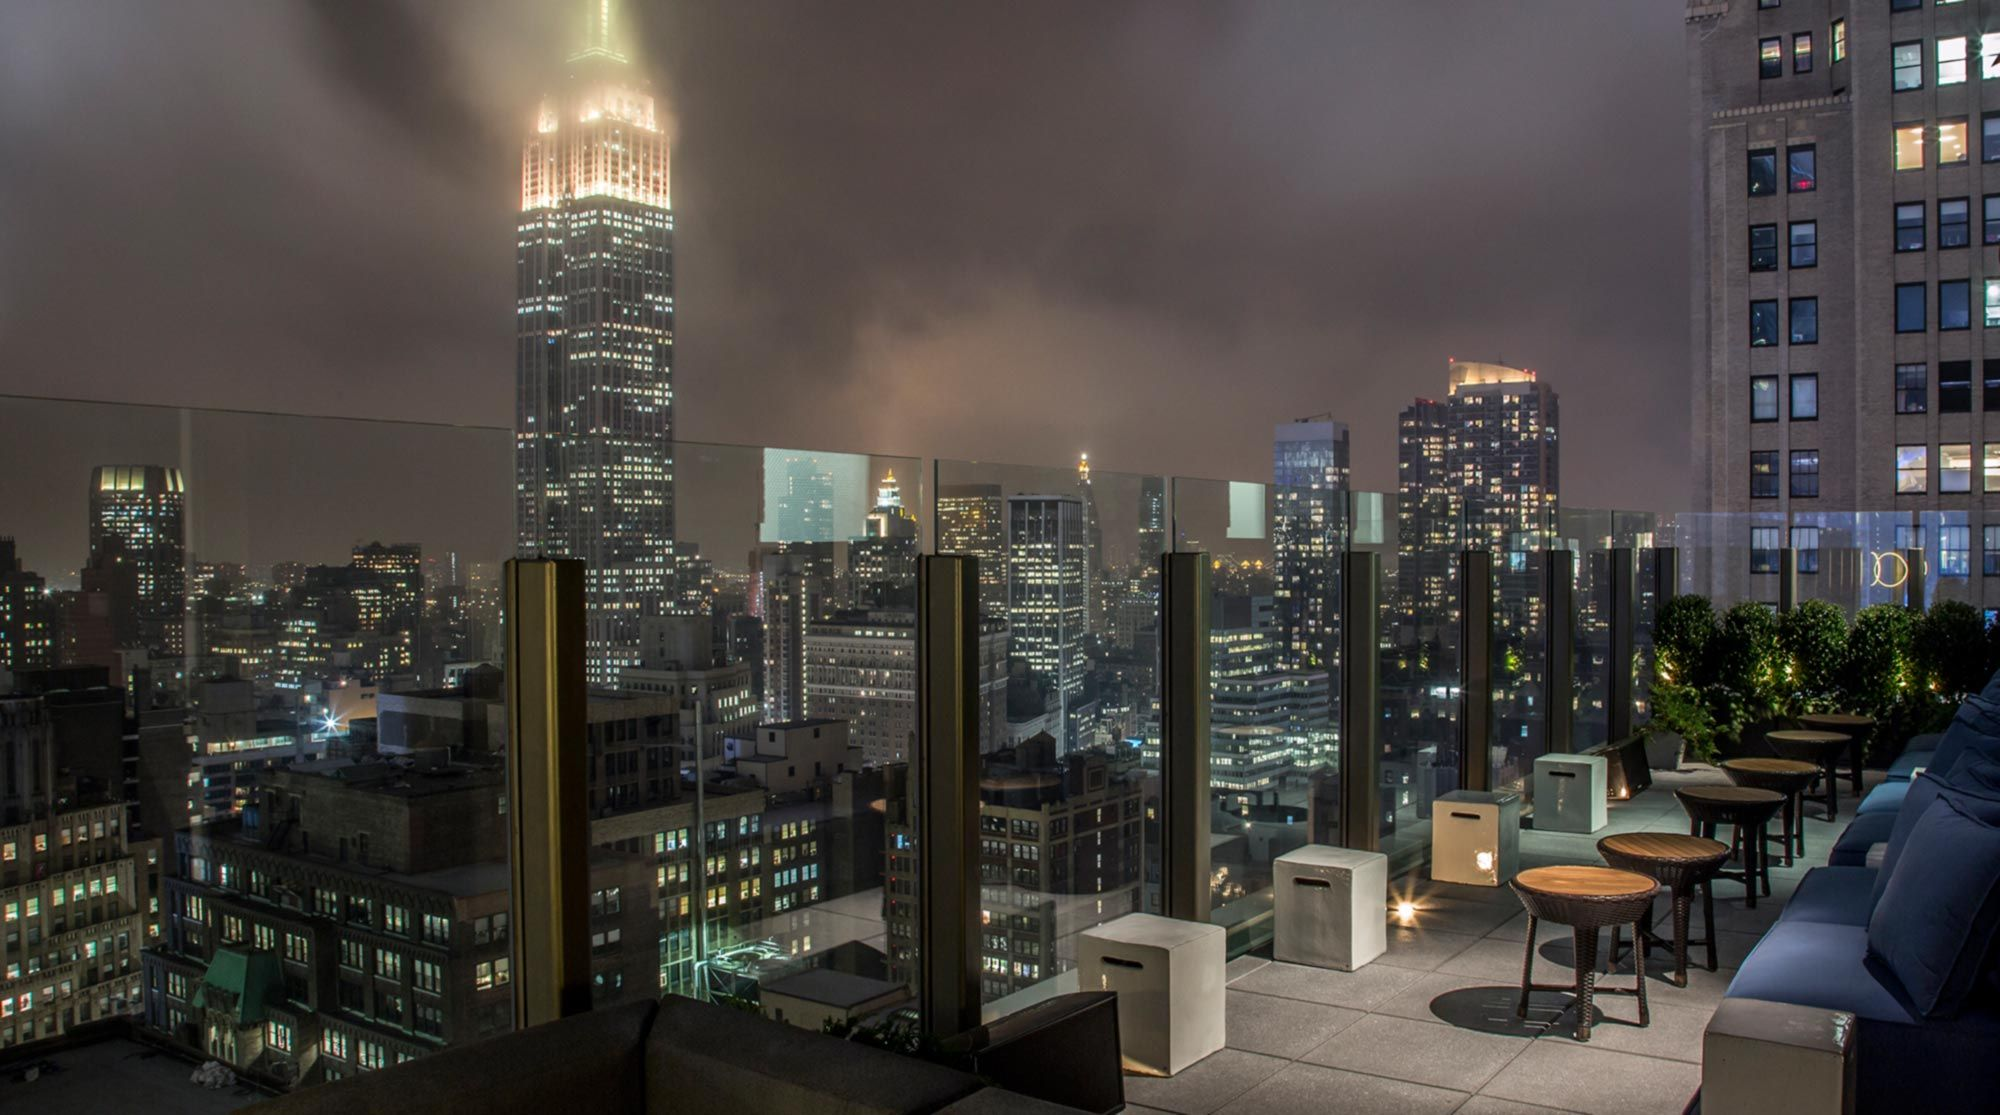 8 Of NYCu0027s Best Under The Radar Rooftop Bars. The Skylark